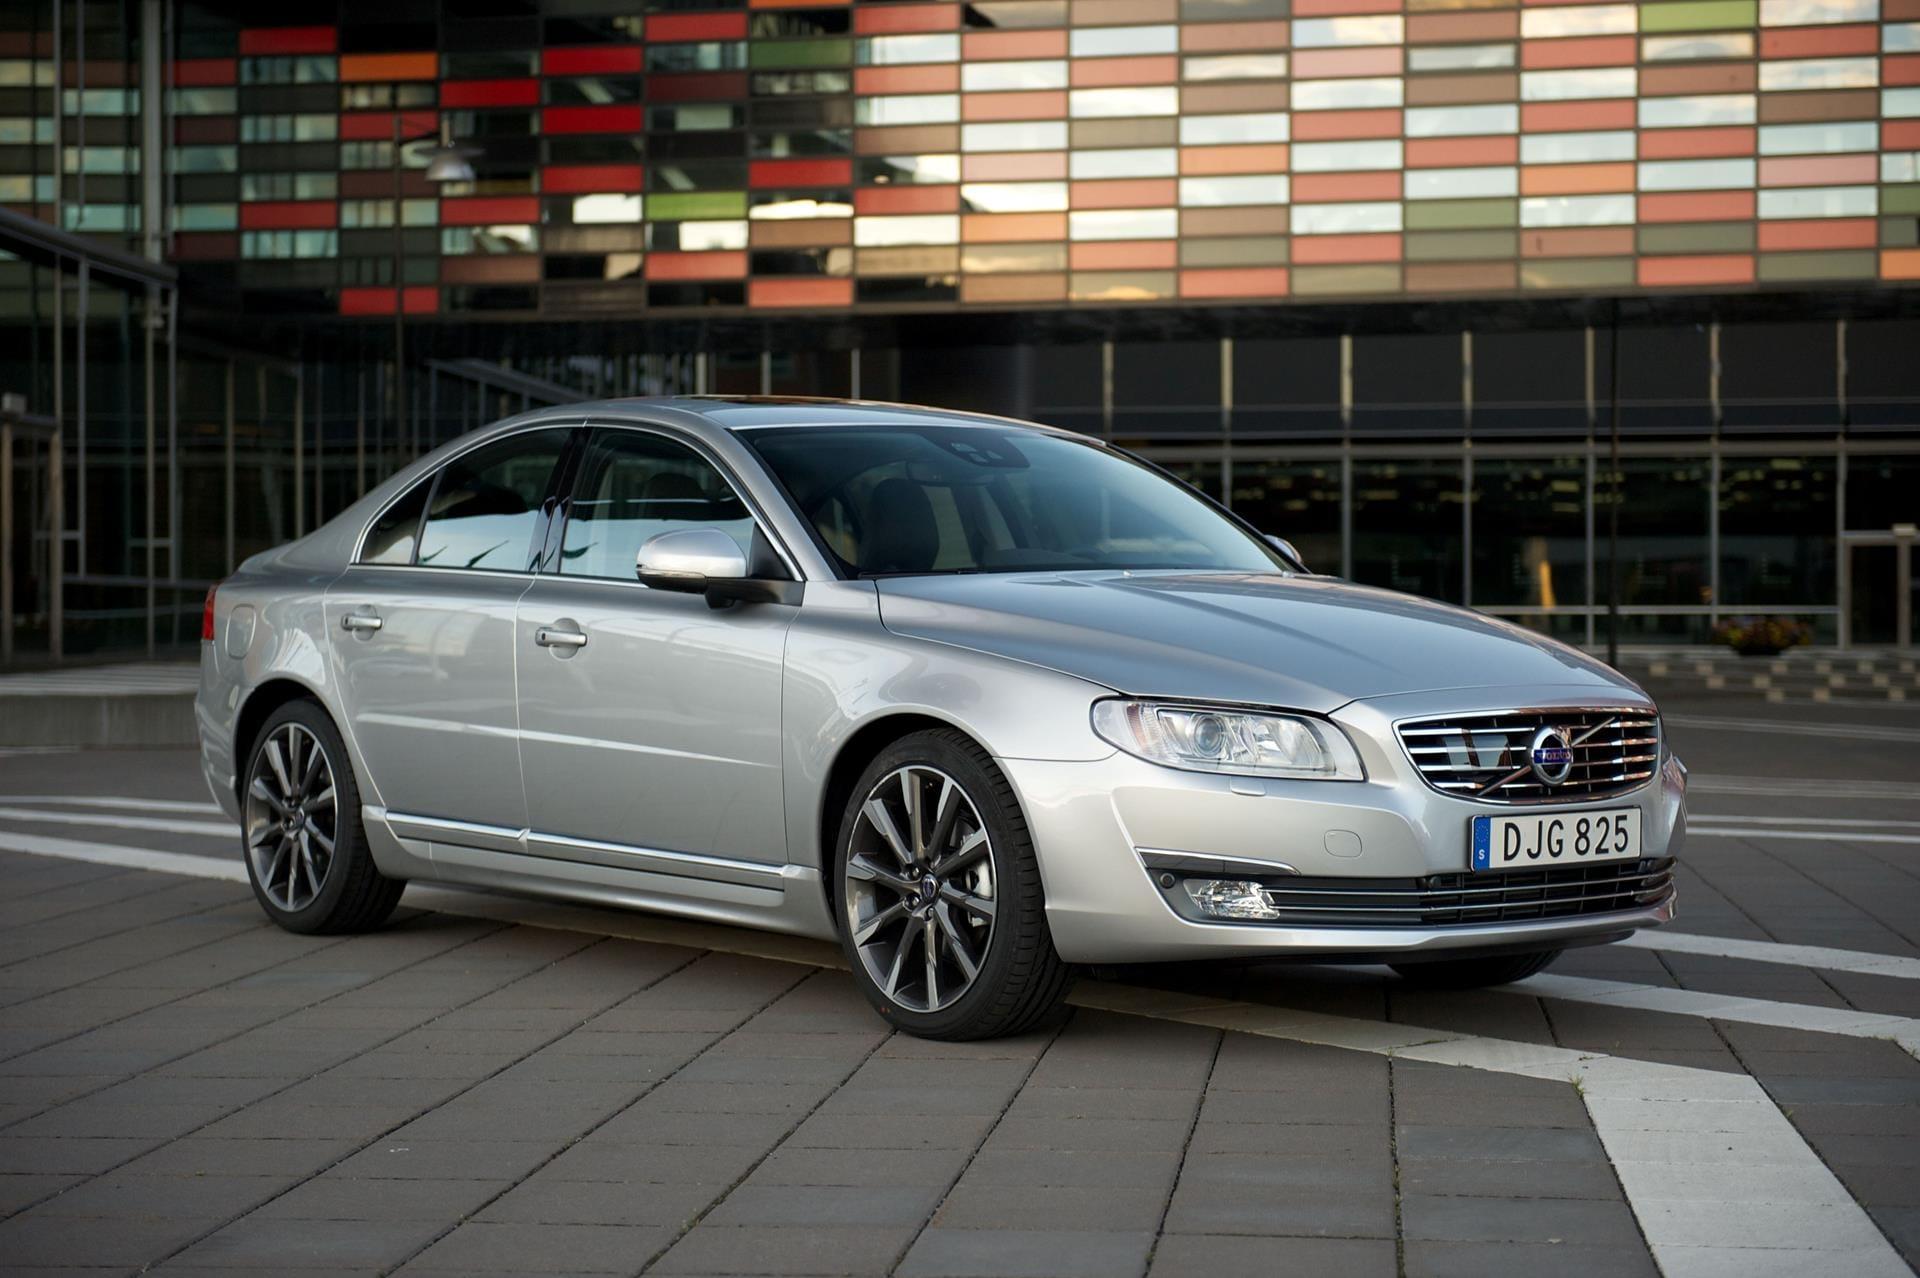 2016 Volvo S80 >> 2016 Volvo S80 Well Equipped For The Money Volvo Cars Lisle